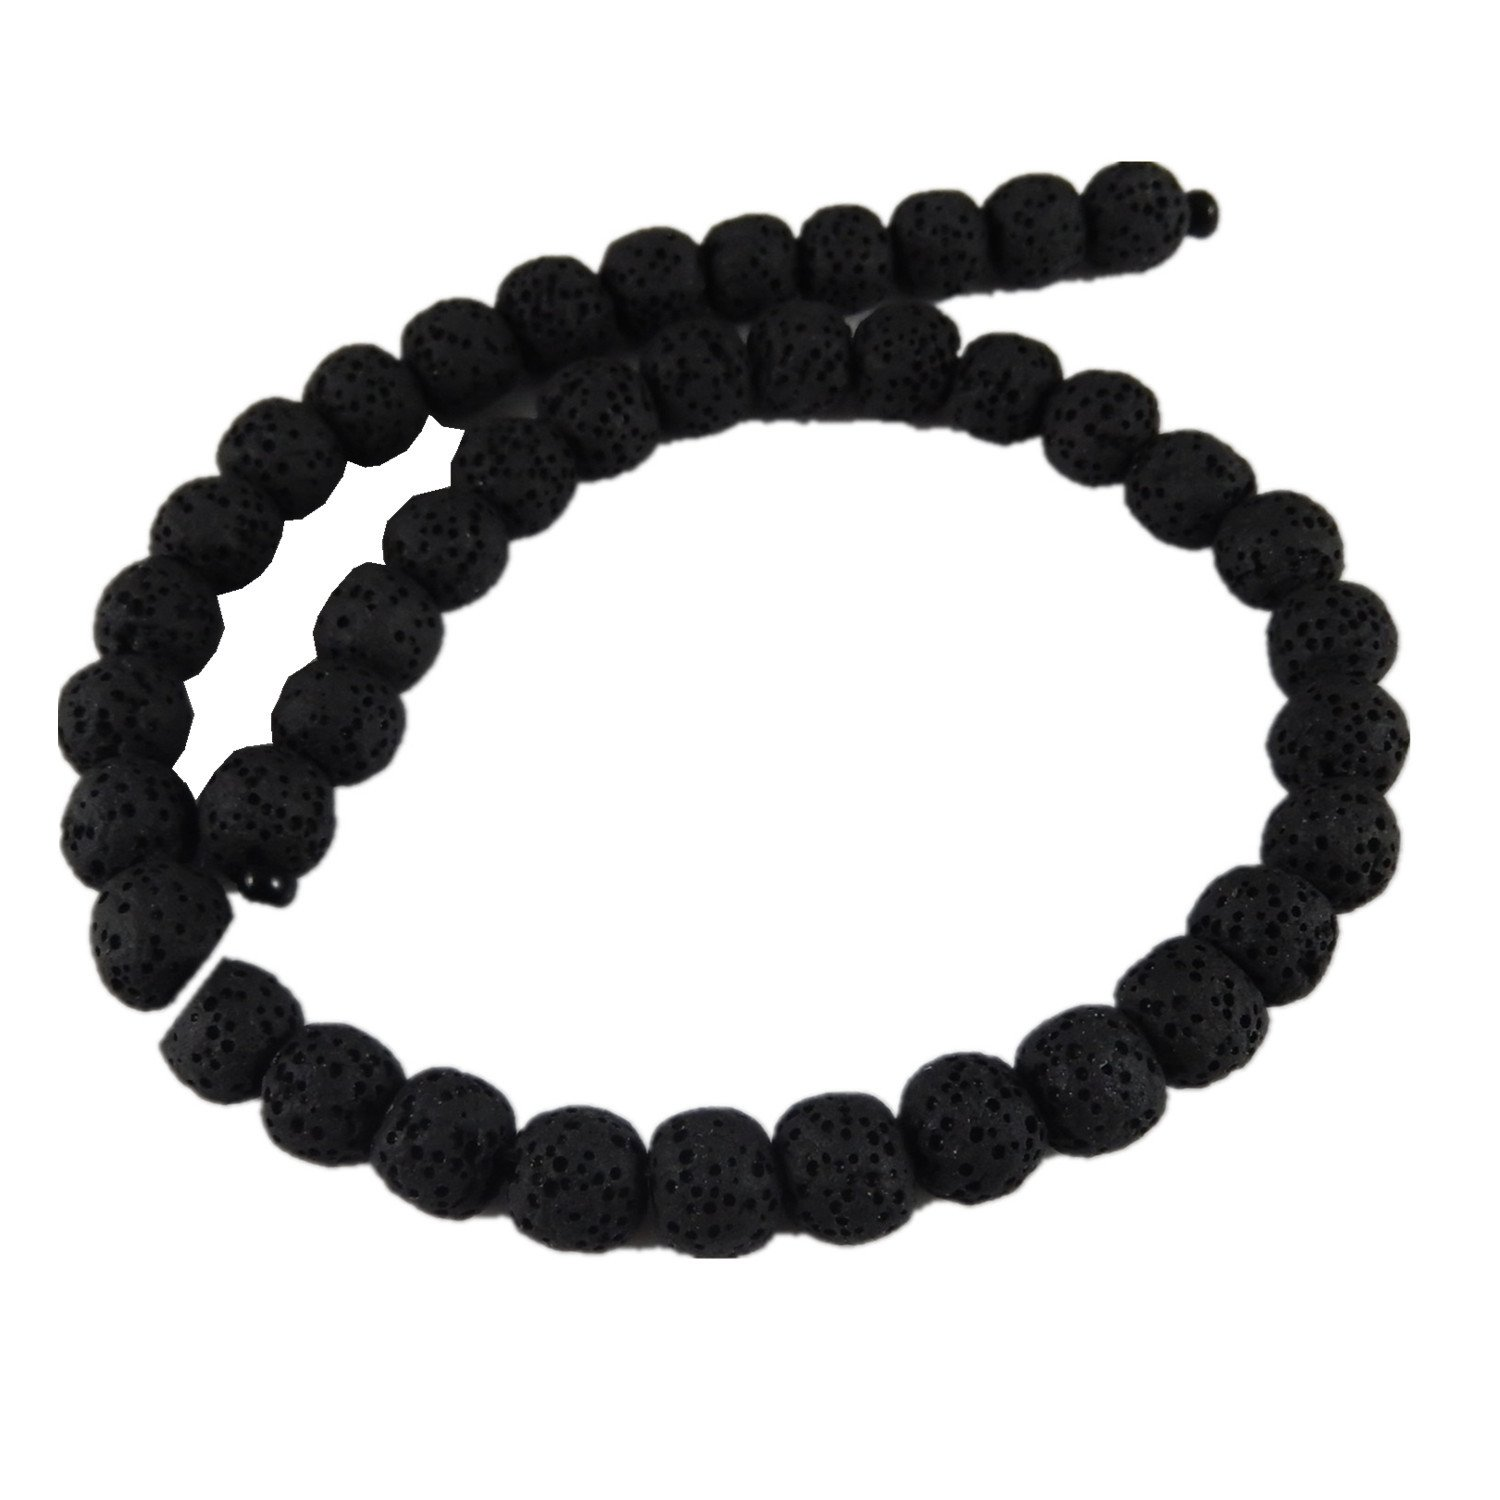 GraceAngie 1 Strand Natural Lava Stone Beads 8mm approx 45pcs Energy Stone Healing Power for Jewelry Making